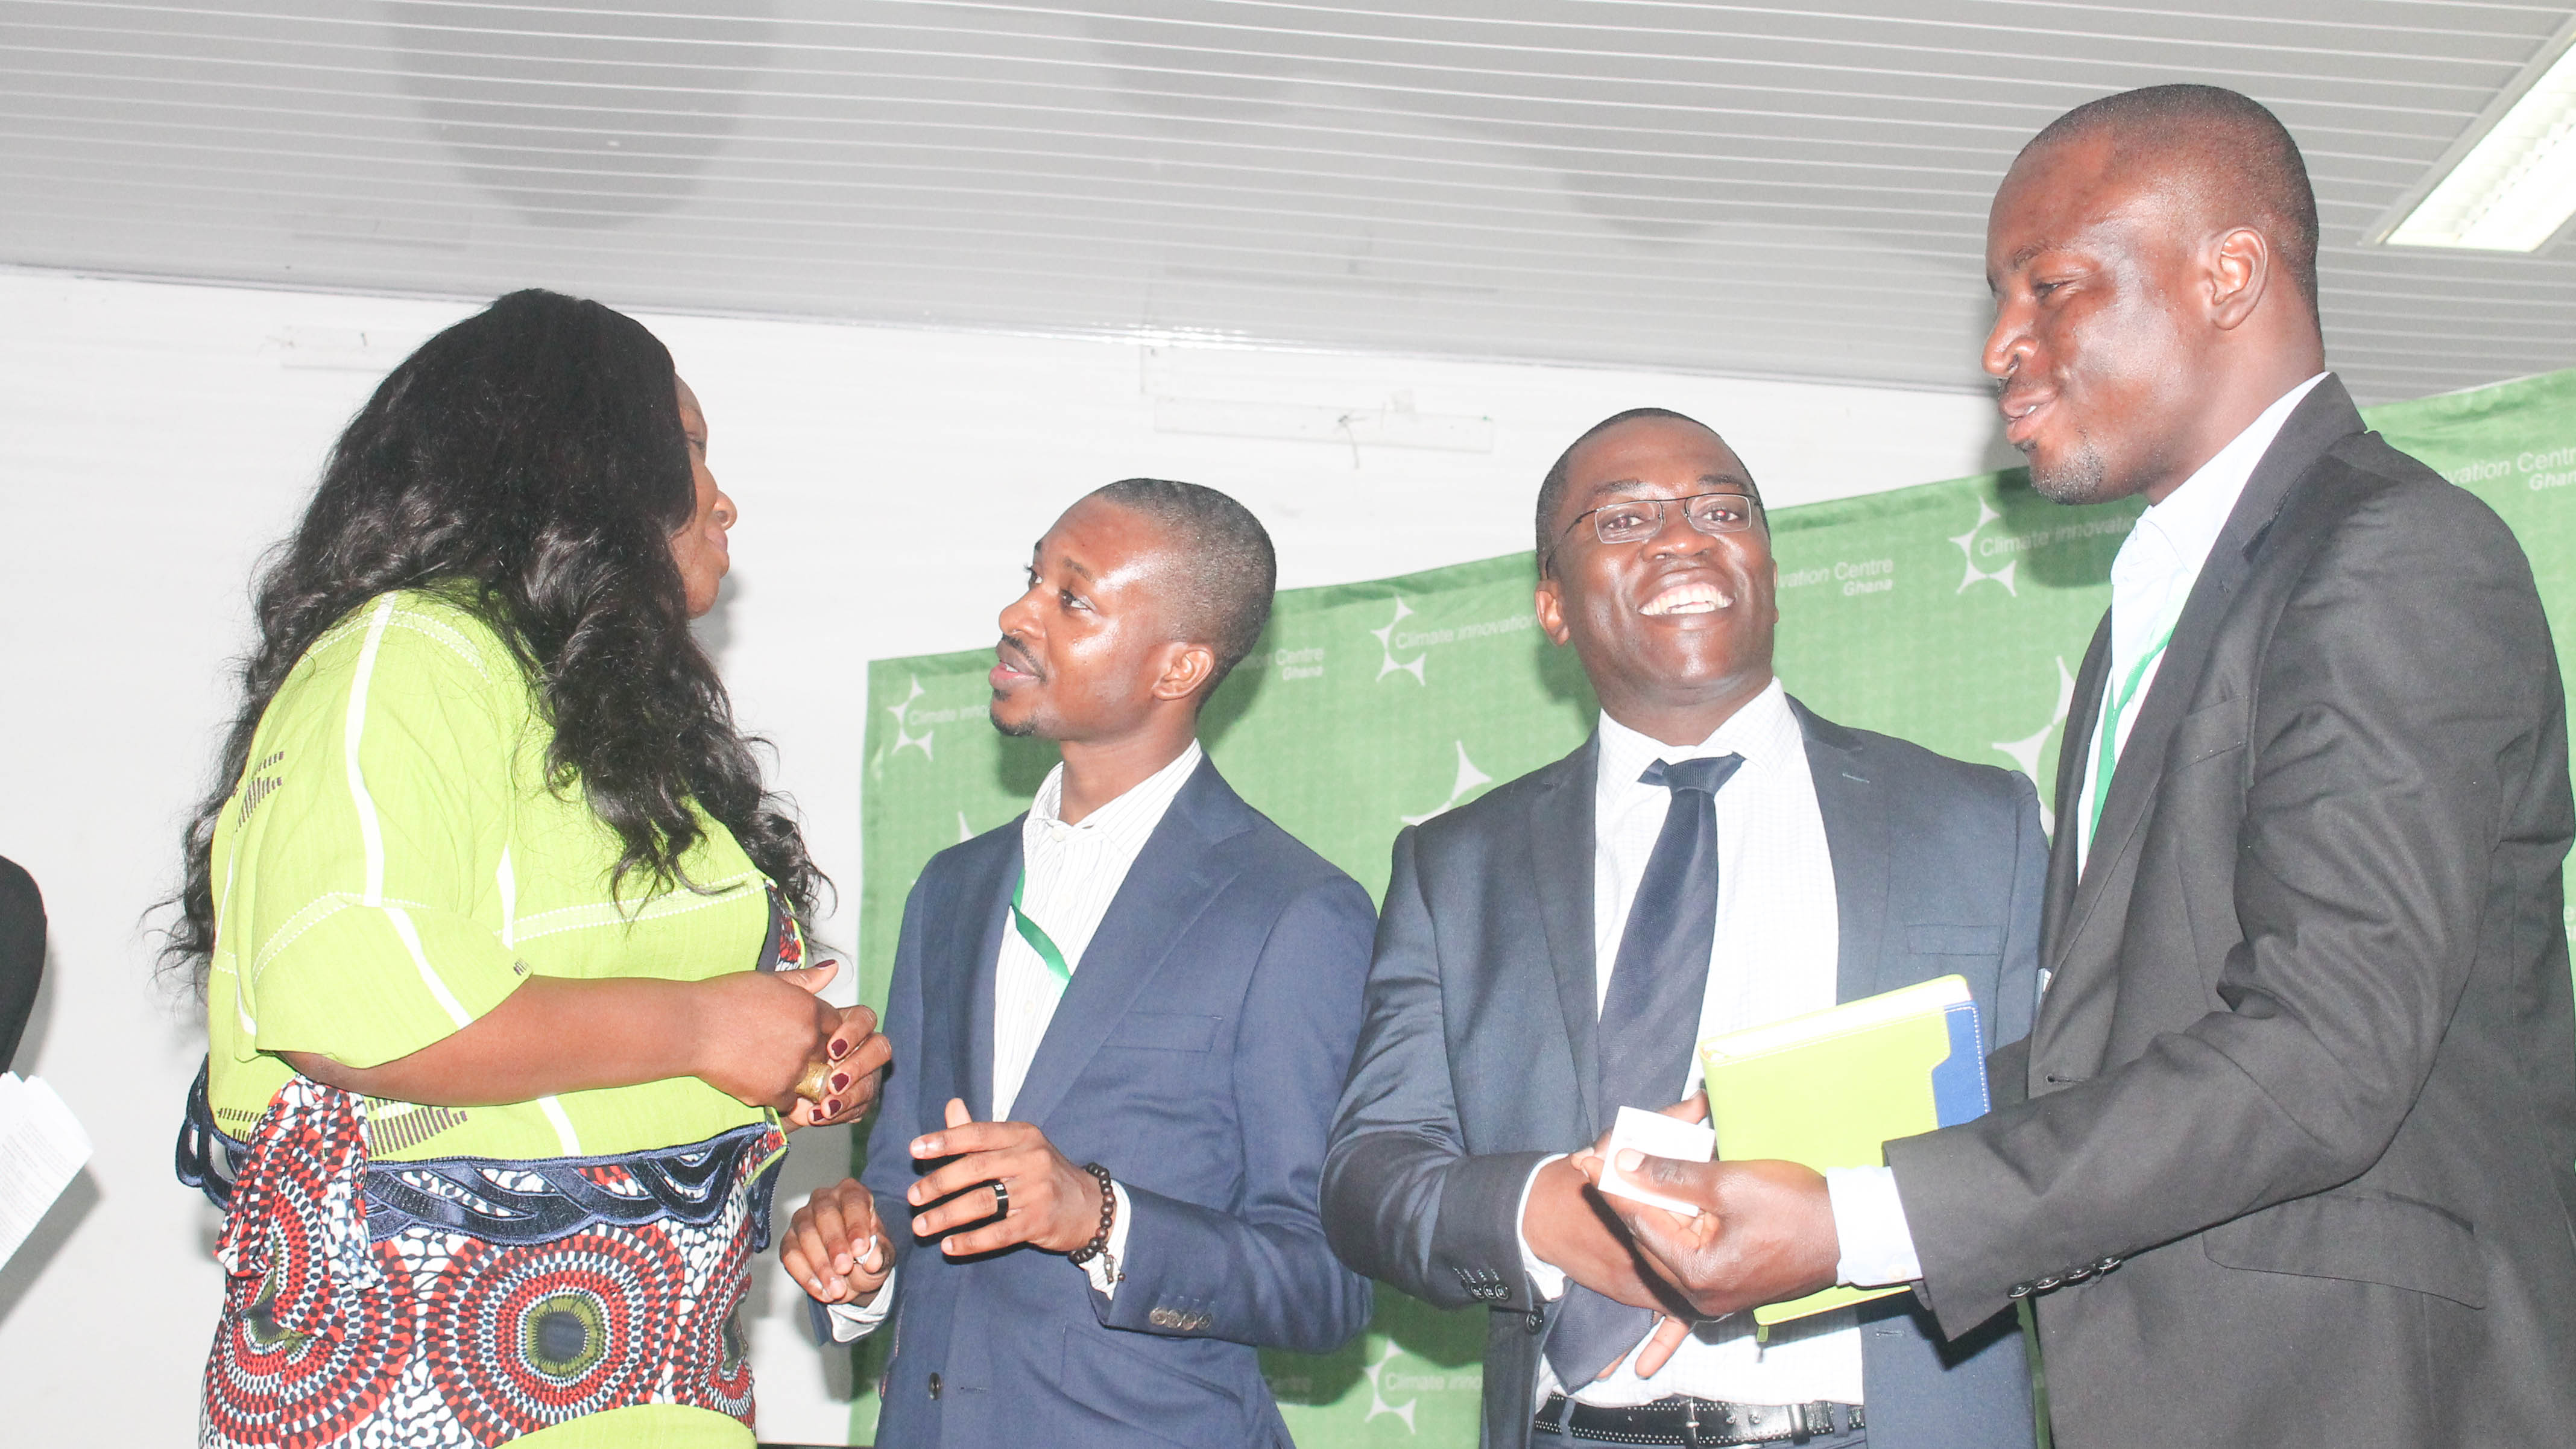 Dr Eric Twum of UNU-INRA (2nd from right) interracting with the participants. On the left is Ms Ruka Sanusi, Executive Director of GCIC